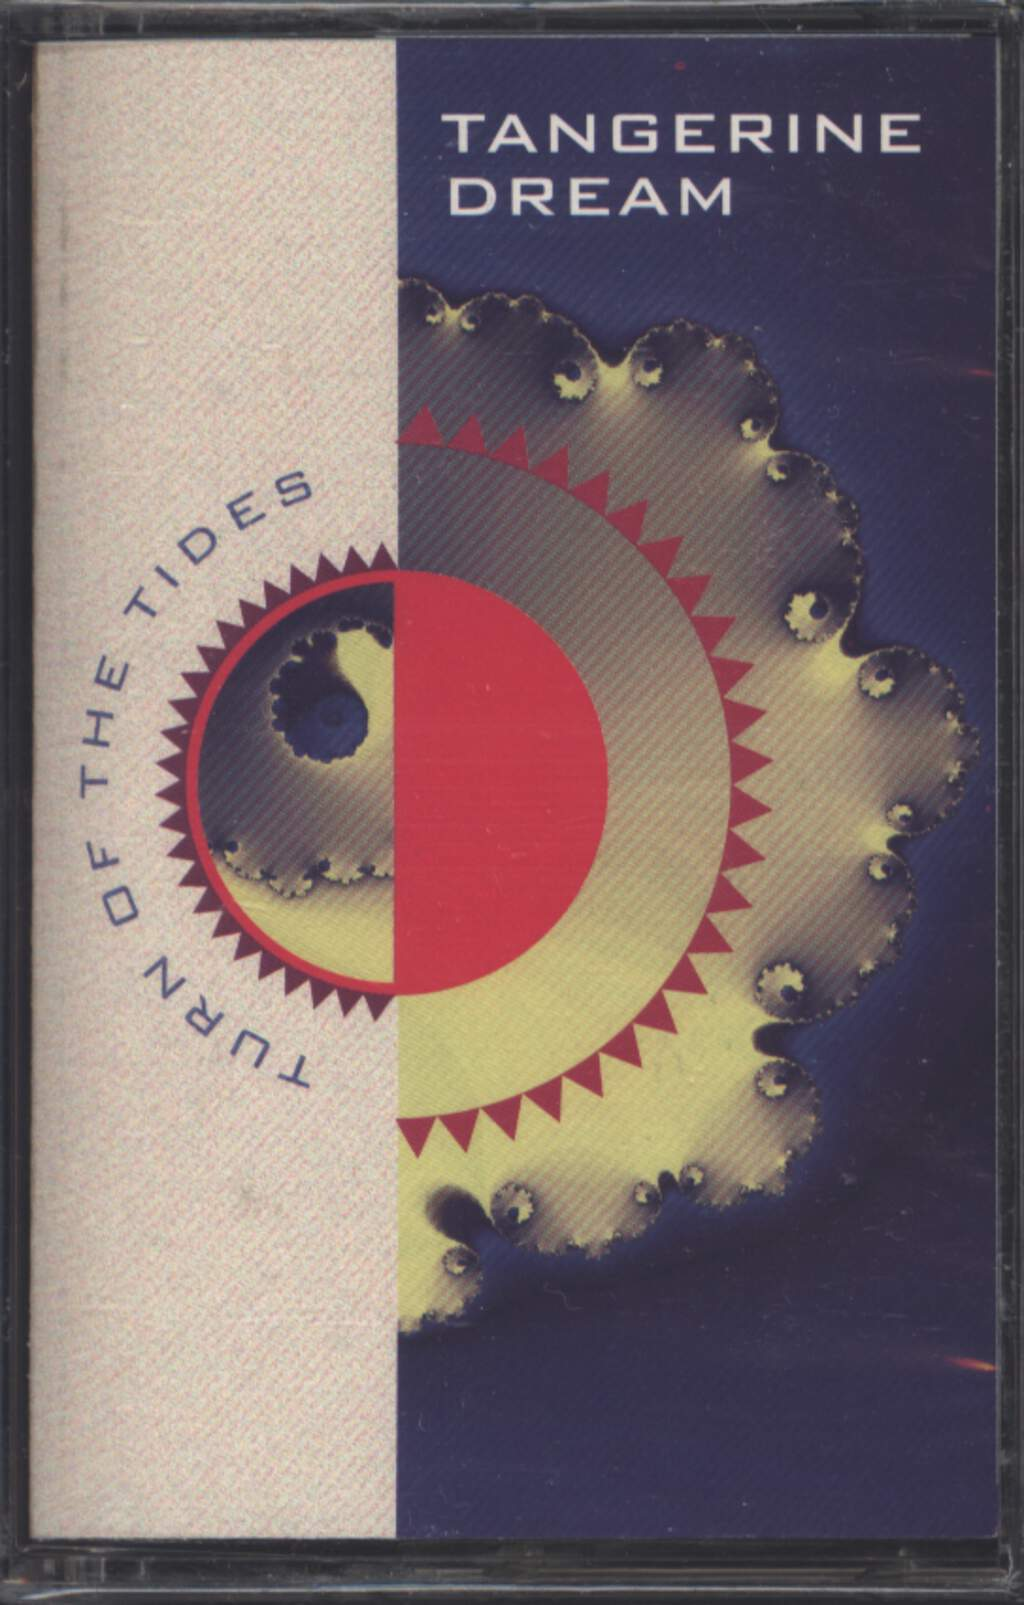 Tangerine Dream: Turn Of The Tides, Compact Cassette